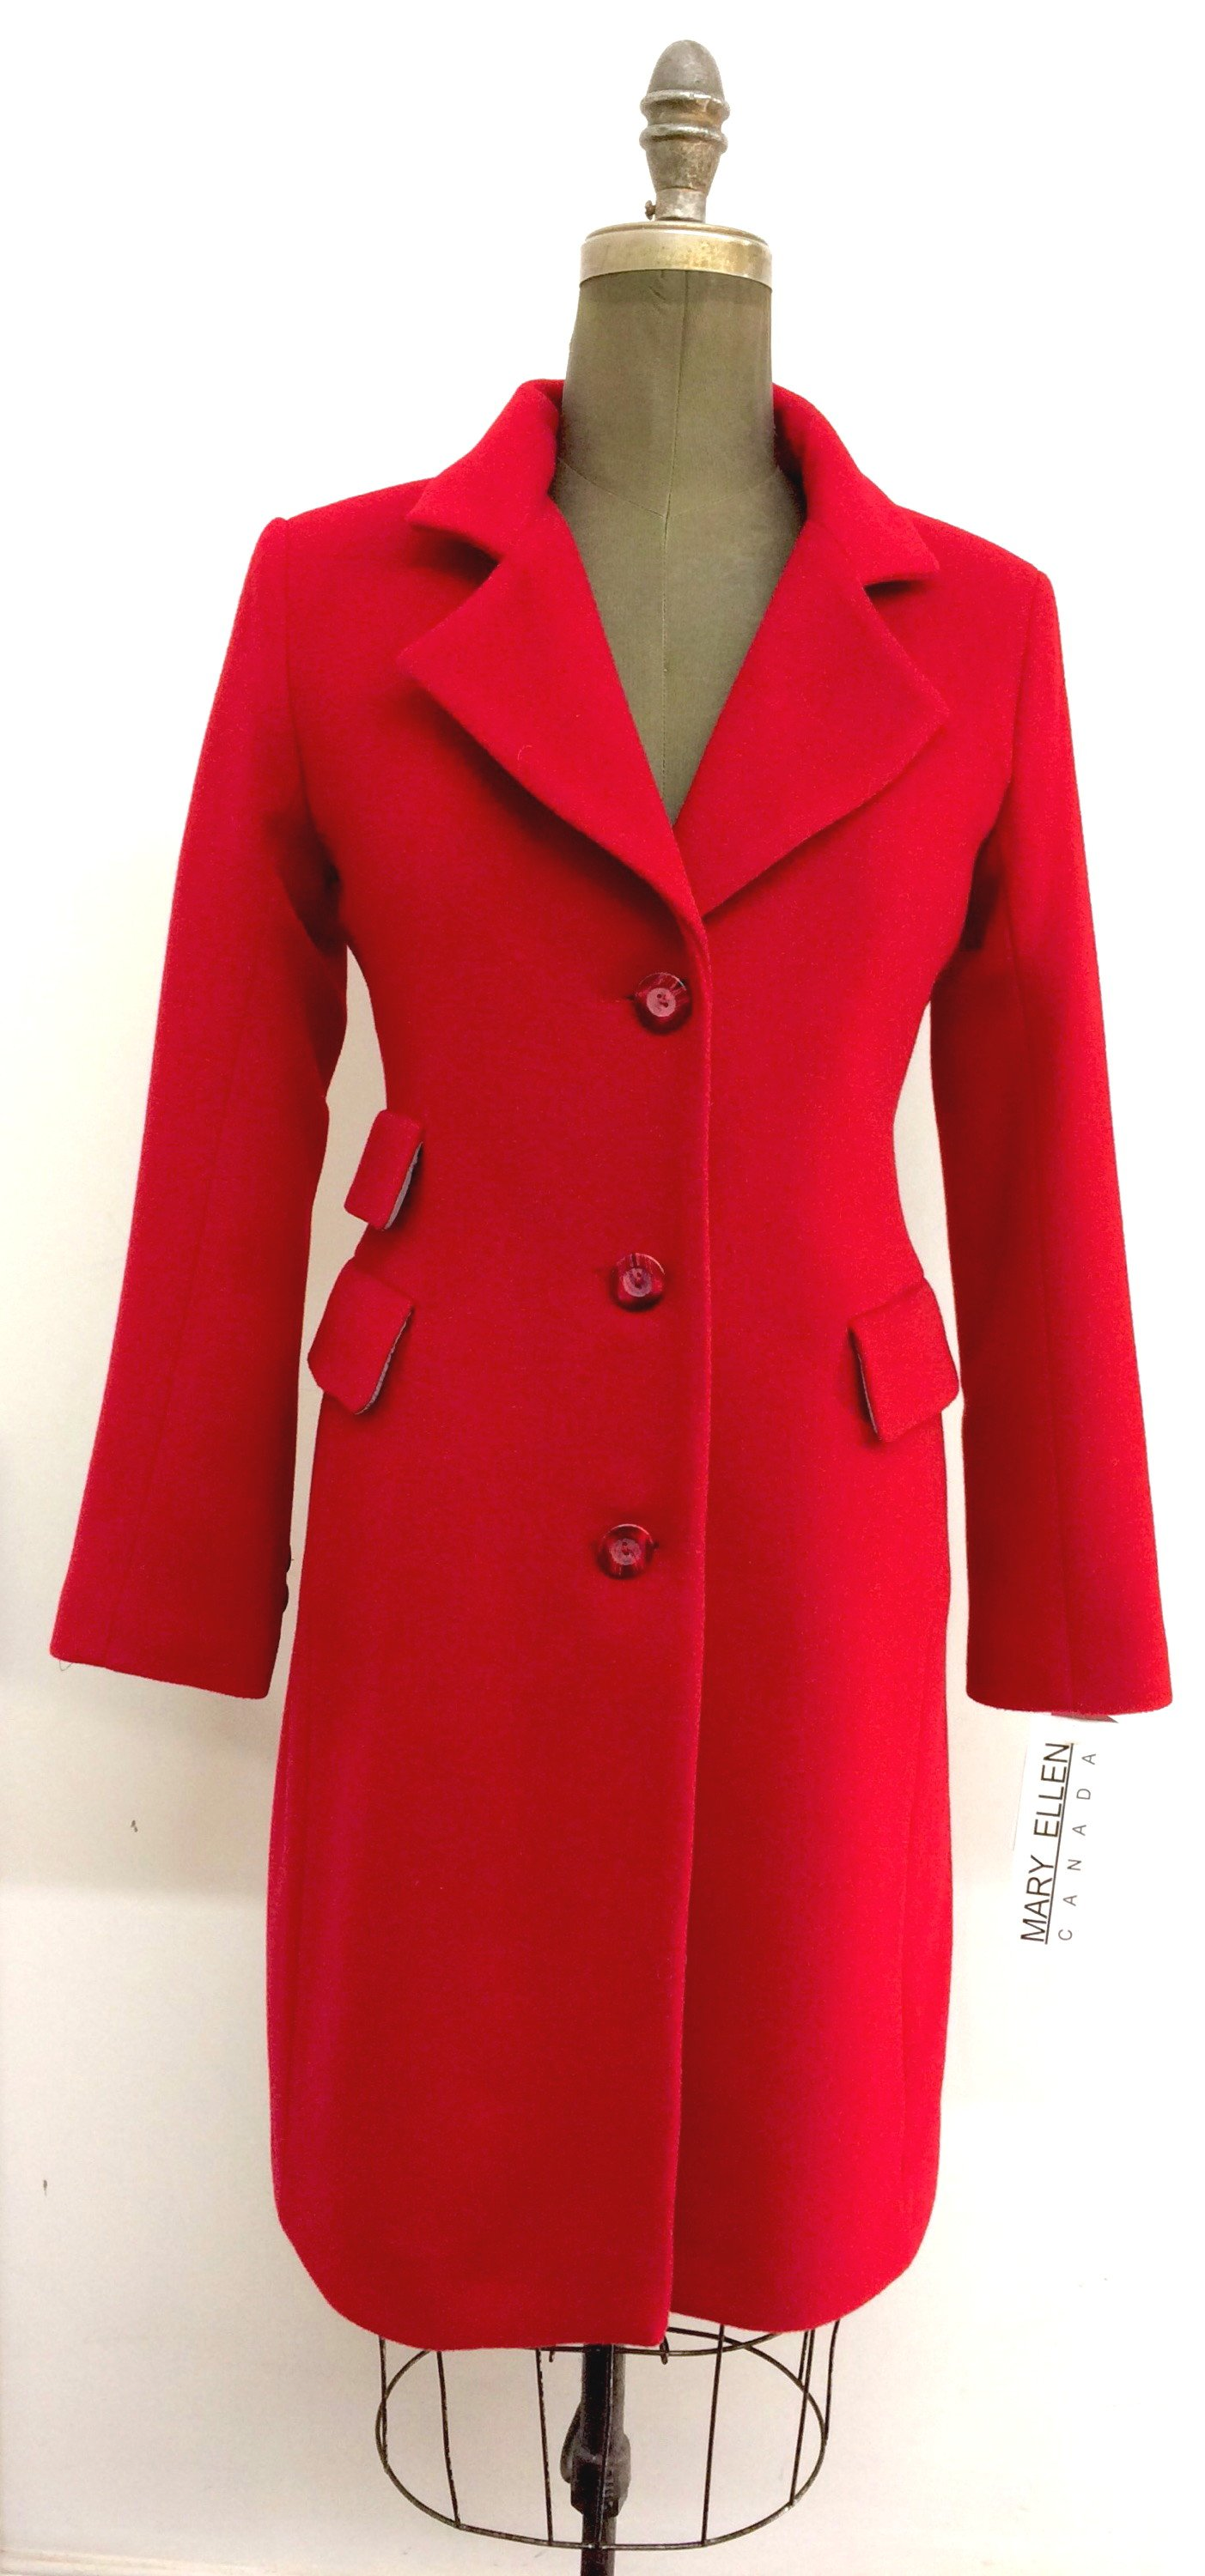 Style #LF1596-6  Ruby Red   Features:  British styling, single breasted, triple  pocket, knee length coat.  Sleek  clean lines, fitted through the waist. Notched  collar. Buttons dyed to match. Fully chamois lined.  Extra buttons included.  In-stock colours: Black, Ruby, Navy, Camel, Charcoal, Black/Pinstripe Blue, Kelly Green  or can be custom made in  the colour of your choice.   Made From Fabrics Imported From Italy and Other  European Countries:  Cashmere,  Alpaca Blends Cashmere Blends,100% Pure Virgin Wool or can  be custom made in the fabric of your choice.  Size: S,M,L  Price: $ 449 and up